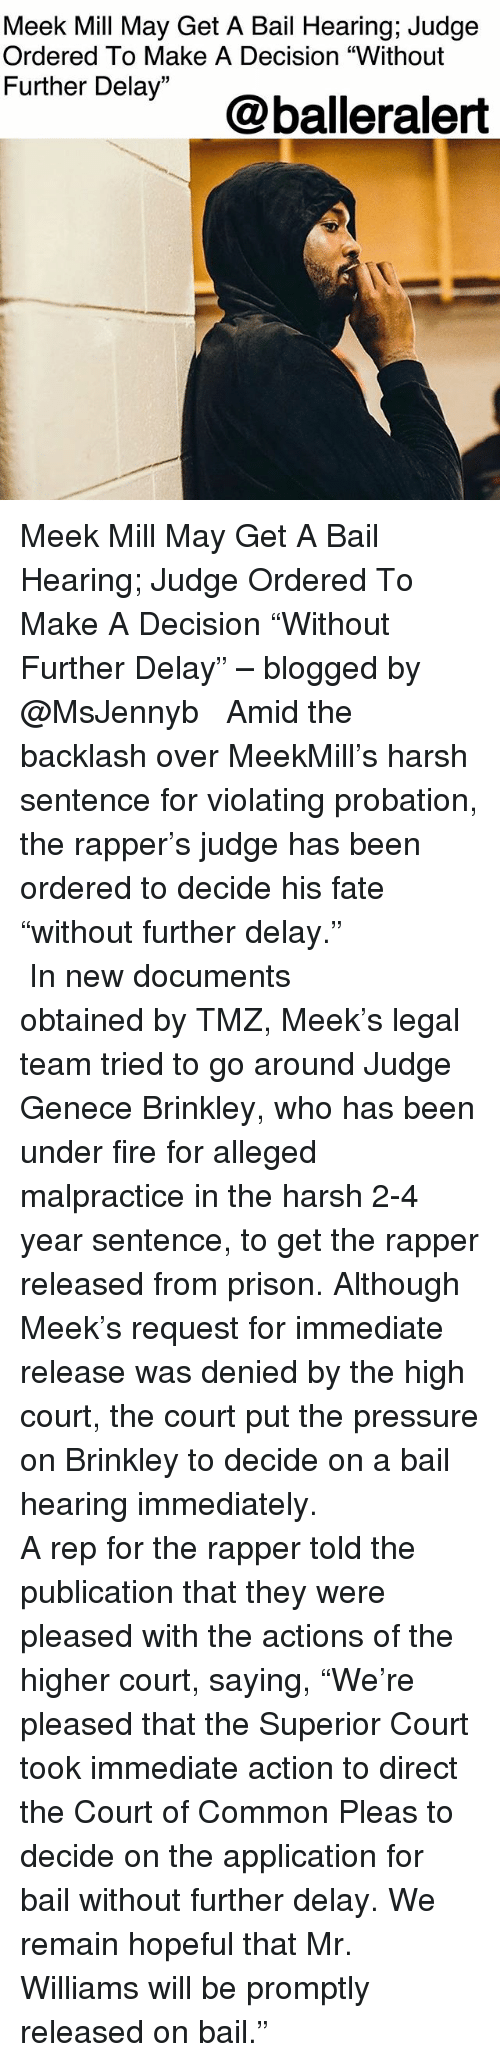 "Fire, Meek Mill, and Memes: Meek Mill May Get A Bail Hearing; Judge  Ordered To Make A Decision ""Without  Further Delay""  @balleralert Meek Mill May Get A Bail Hearing; Judge Ordered To Make A Decision ""Without Further Delay"" – blogged by @MsJennyb ⠀⠀⠀⠀⠀⠀⠀ ⠀⠀⠀⠀⠀⠀⠀ Amid the backlash over MeekMill's harsh sentence for violating probation, the rapper's judge has been ordered to decide his fate ""without further delay."" ⠀⠀⠀⠀⠀⠀⠀ ⠀⠀⠀⠀⠀⠀⠀ In new documents obtained by TMZ, Meek's legal team tried to go around Judge Genece Brinkley, who has been under fire for alleged malpractice in the harsh 2-4 year sentence, to get the rapper released from prison. Although Meek's request for immediate release was denied by the high court, the court put the pressure on Brinkley to decide on a bail hearing immediately. ⠀⠀⠀⠀⠀⠀⠀ ⠀⠀⠀⠀⠀⠀⠀ A rep for the rapper told the publication that they were pleased with the actions of the higher court, saying, ""We're pleased that the Superior Court took immediate action to direct the Court of Common Pleas to decide on the application for bail without further delay. We remain hopeful that Mr. Williams will be promptly released on bail."""